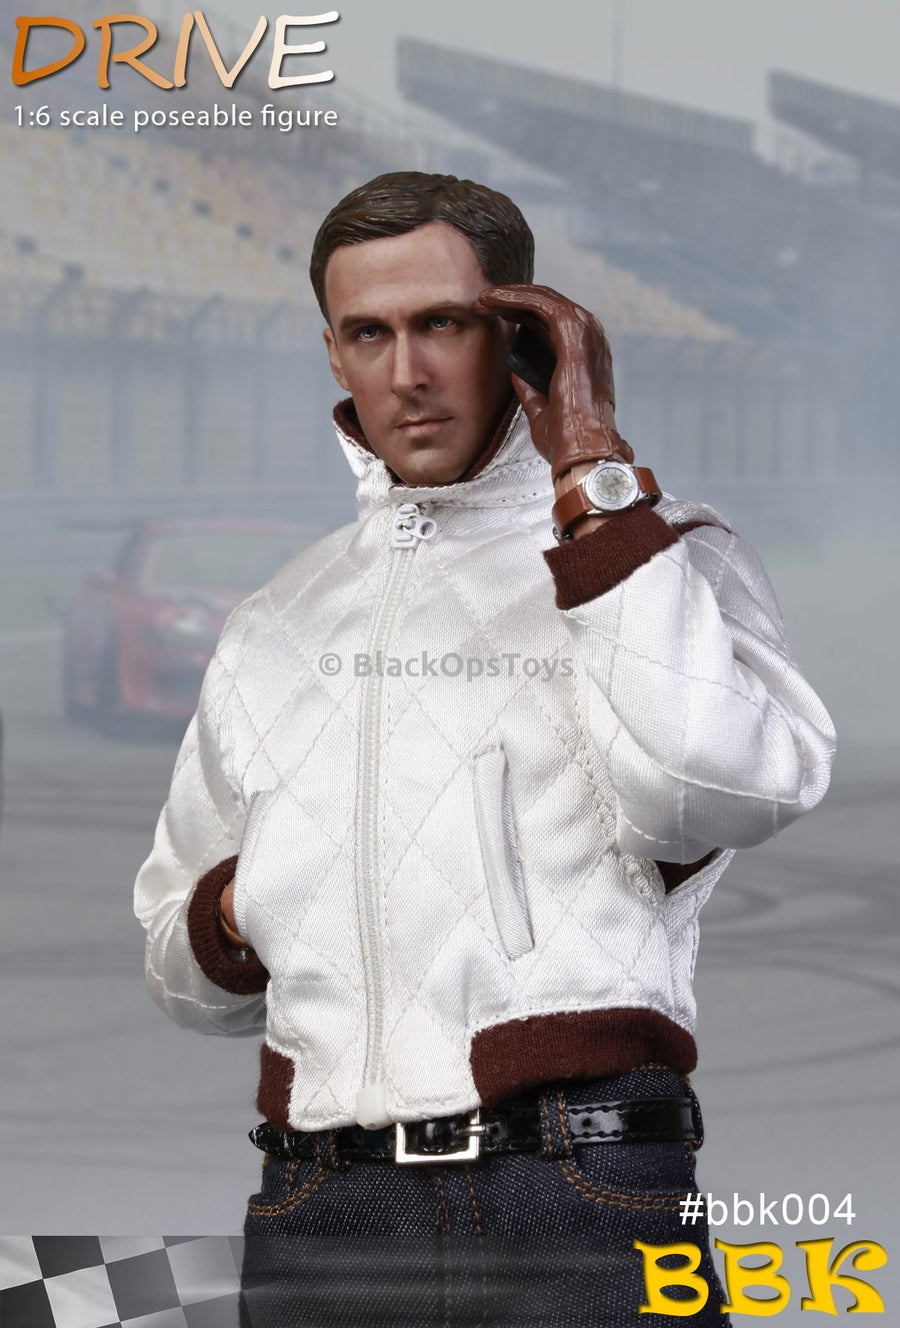 Drive Driver Ryan Gosling Cellphone